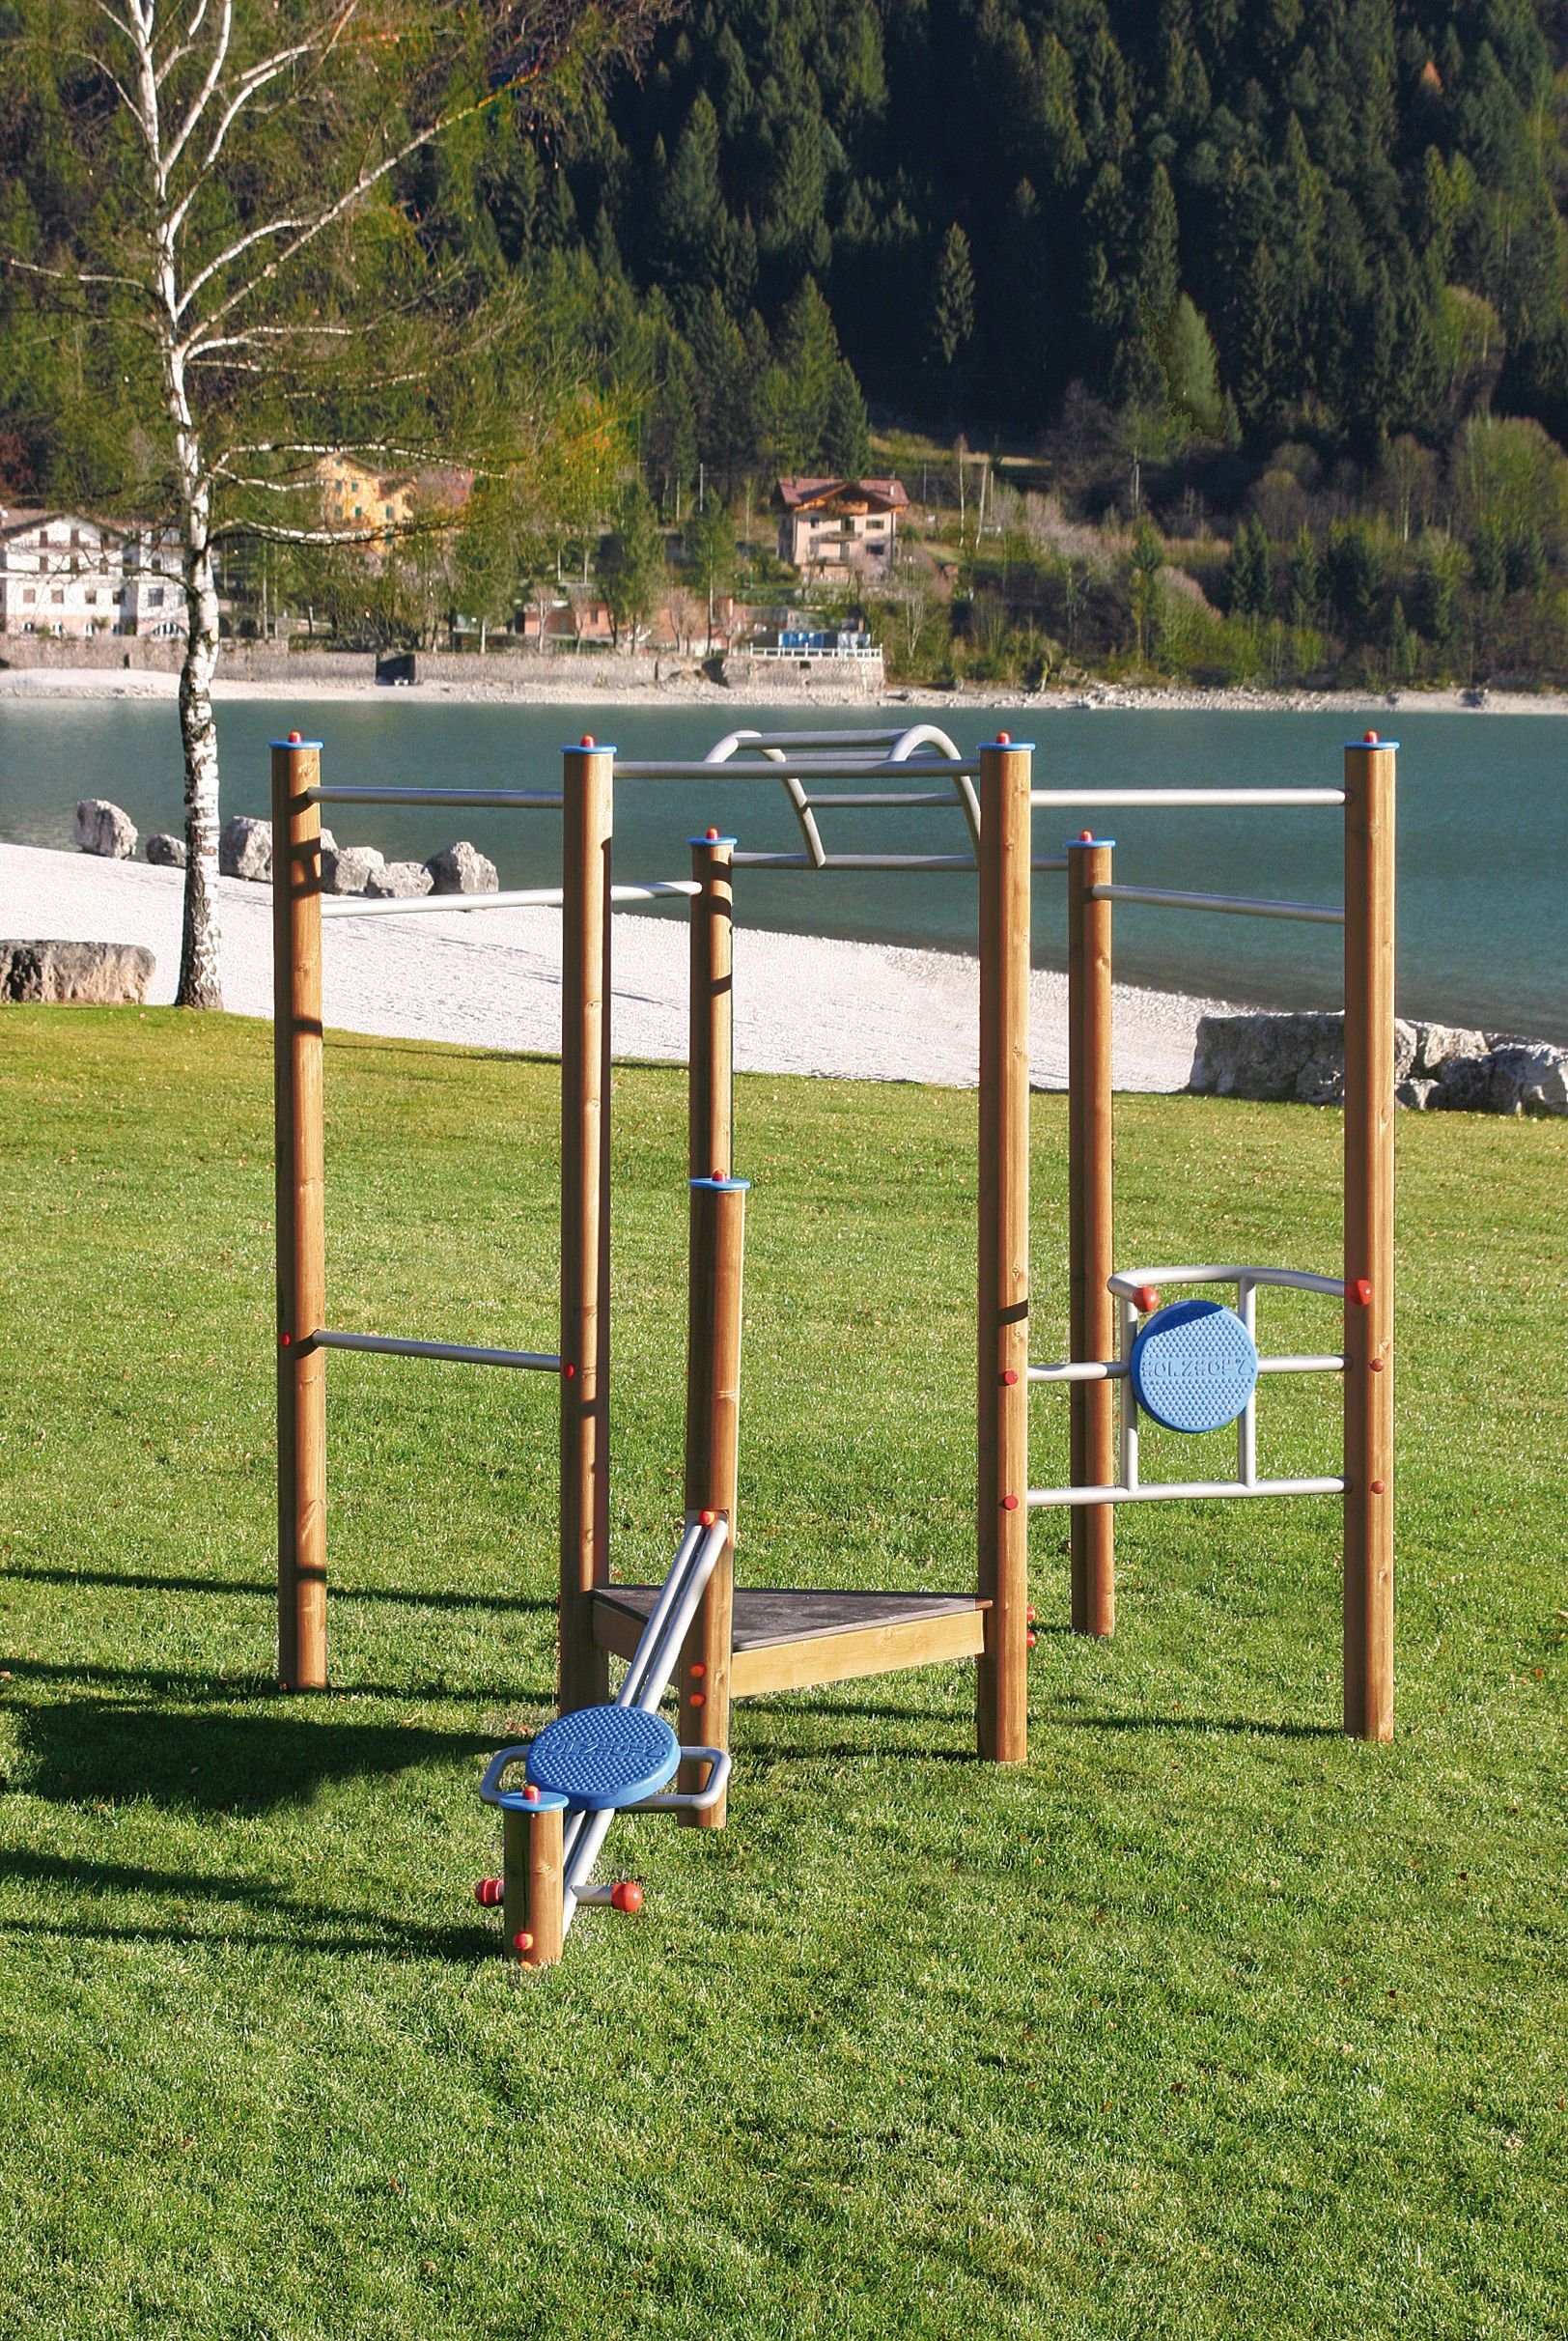 Holzhof SPORTING STRUCTURES Gym Tower multiple excercise set